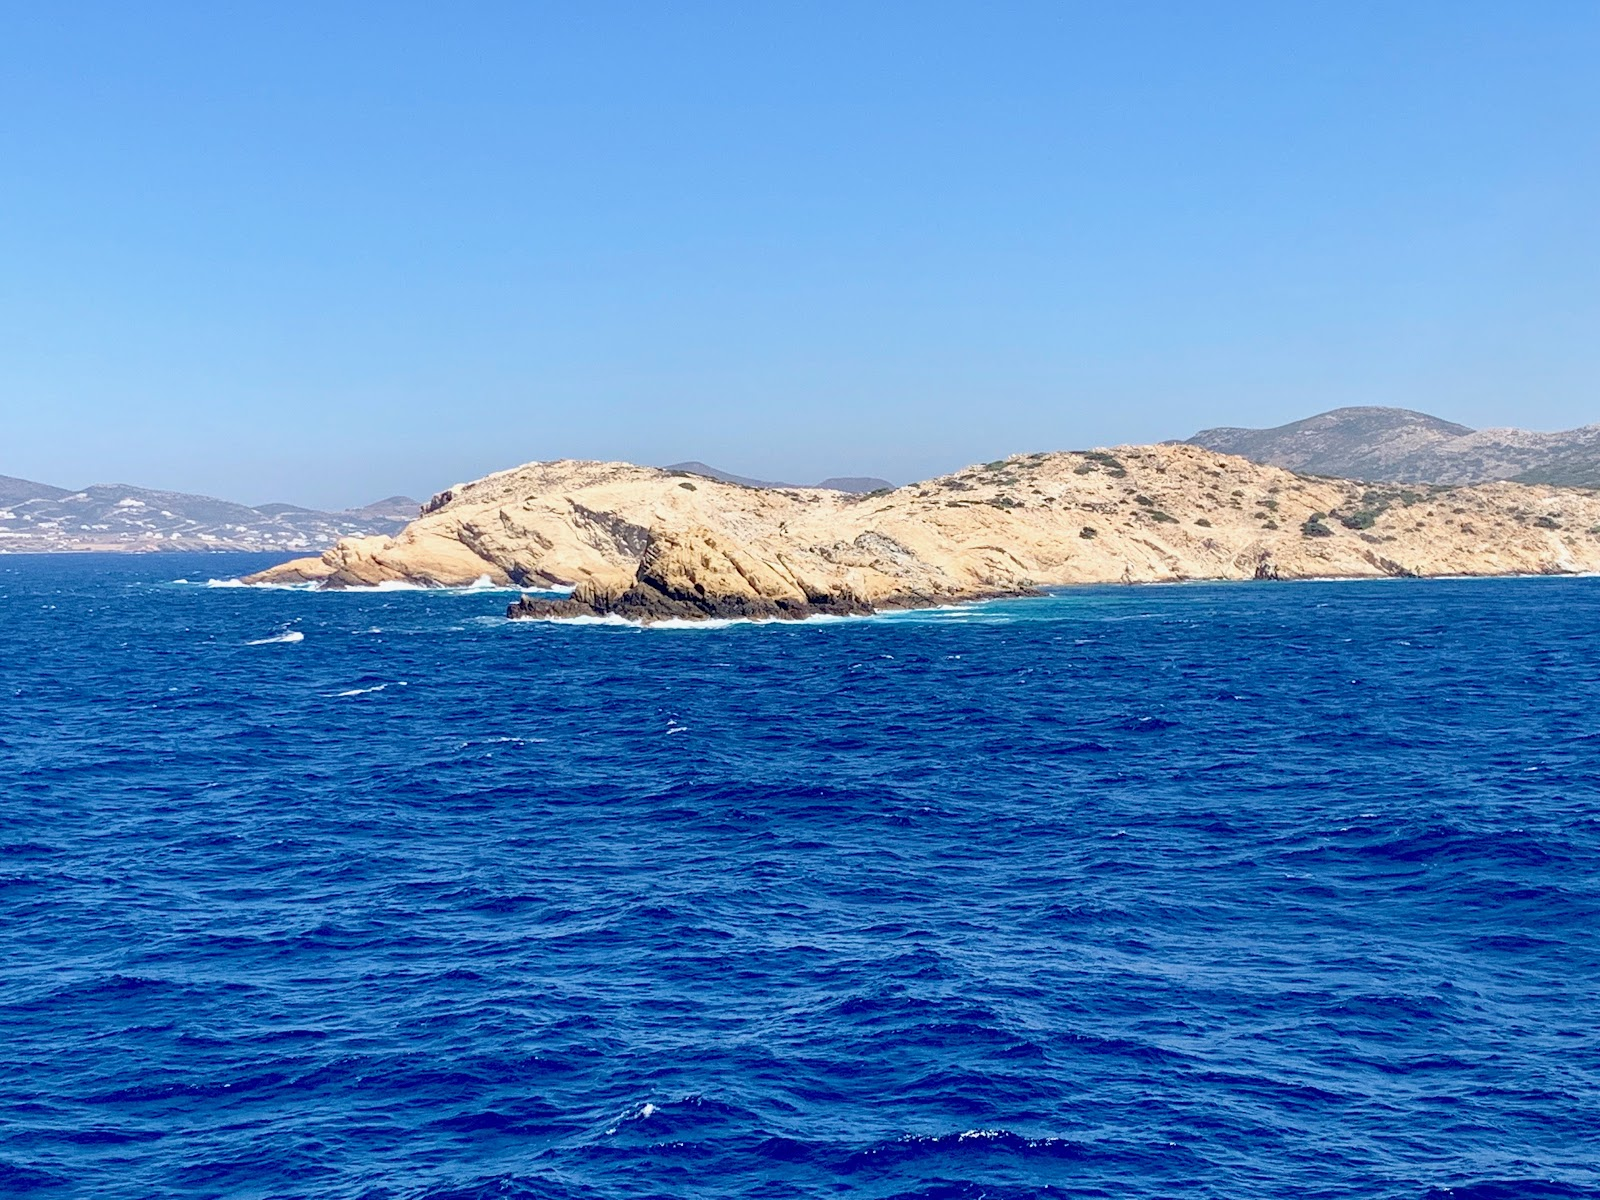 Paros - one of the best Greek islands. 2 days in Paros